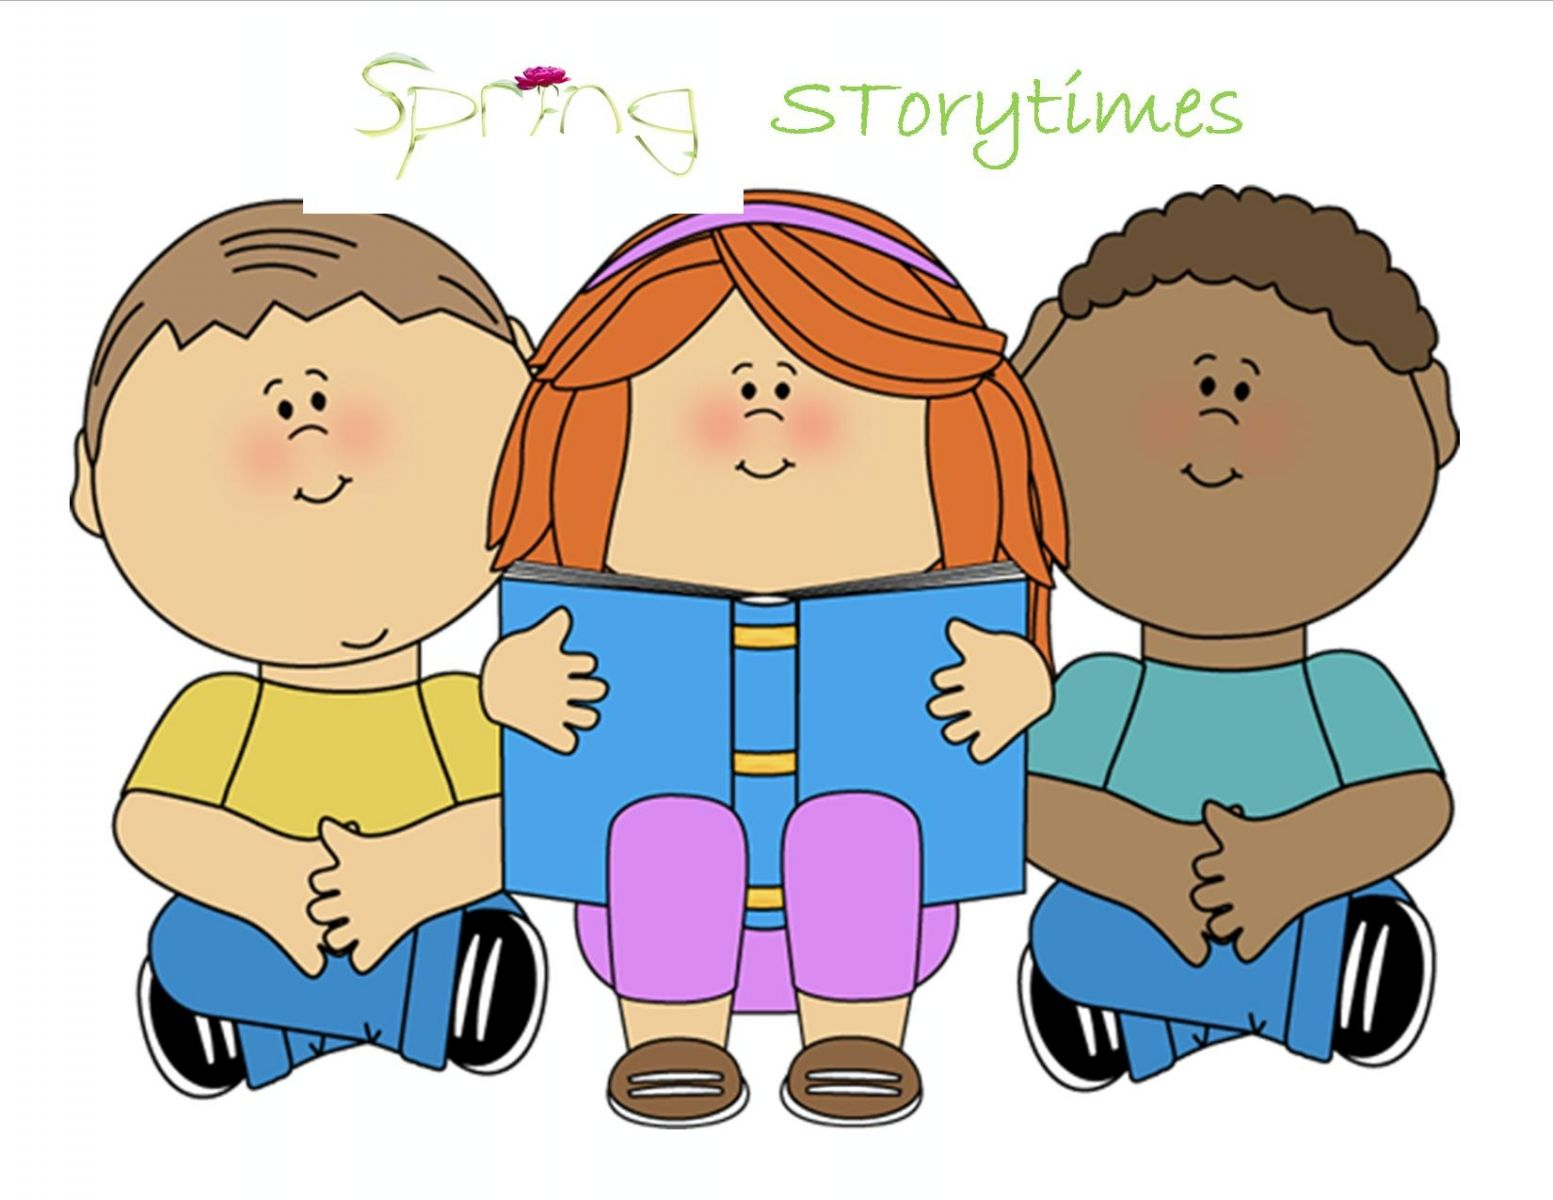 children s program archives malden public library storytime clipart images story time clip art images